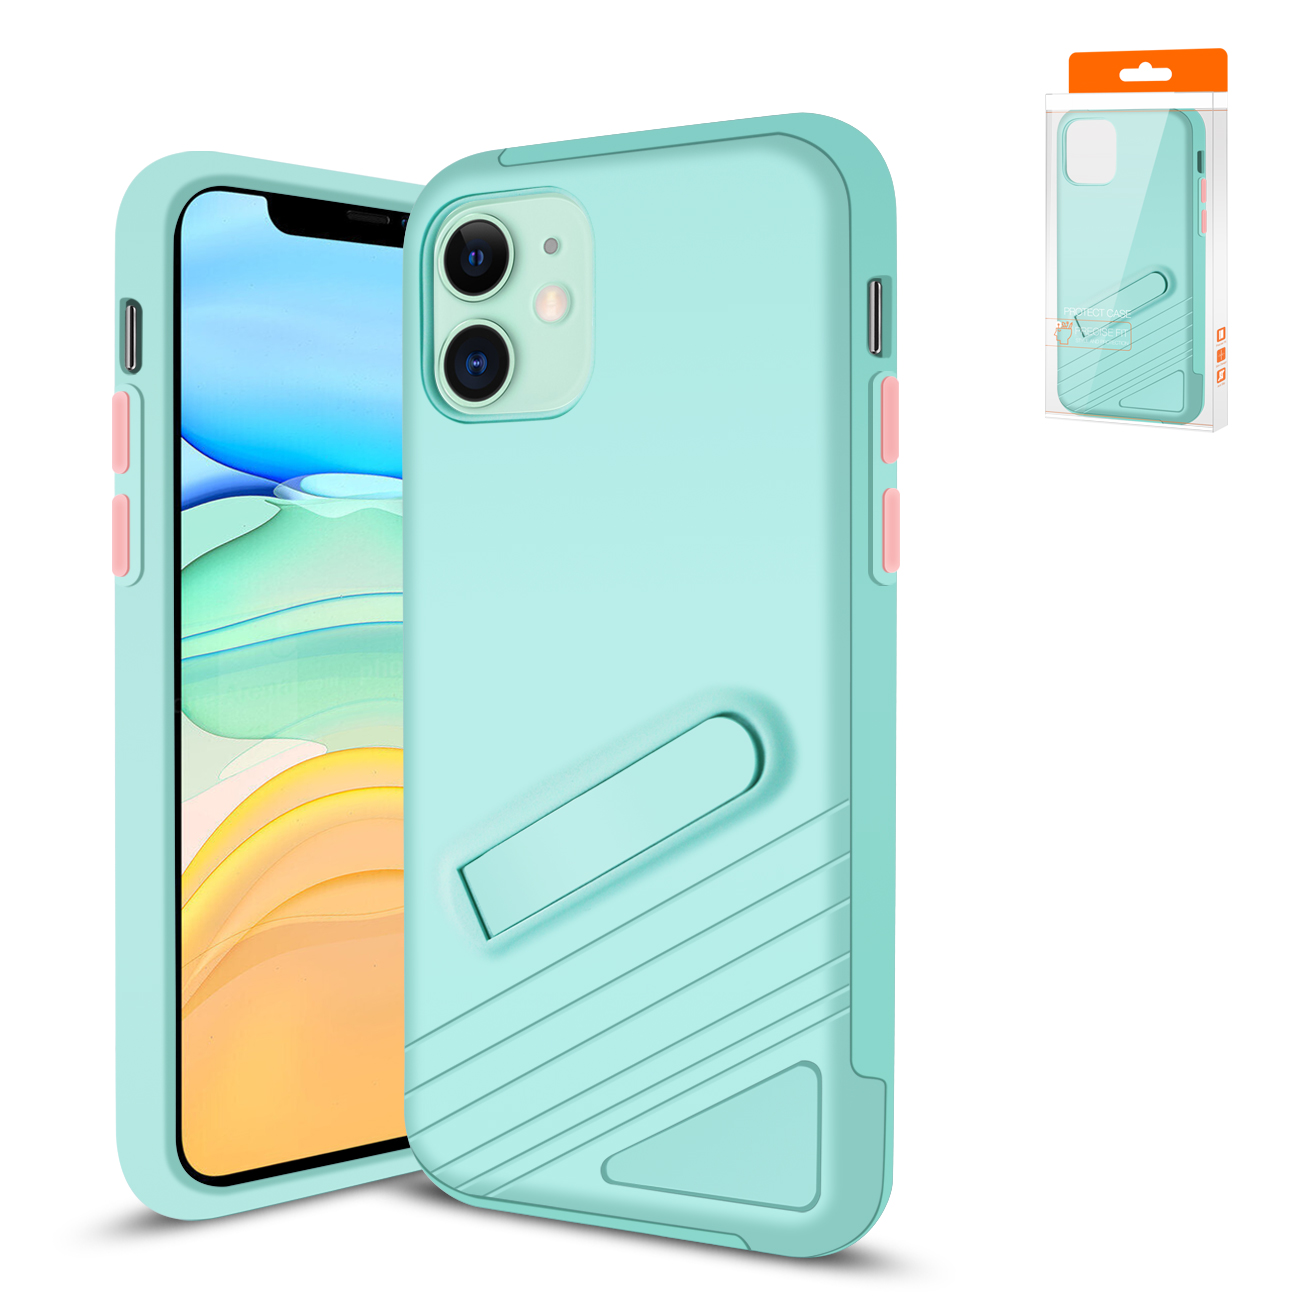 Reiko Apple iPhone 11 Armor Cases In Blue